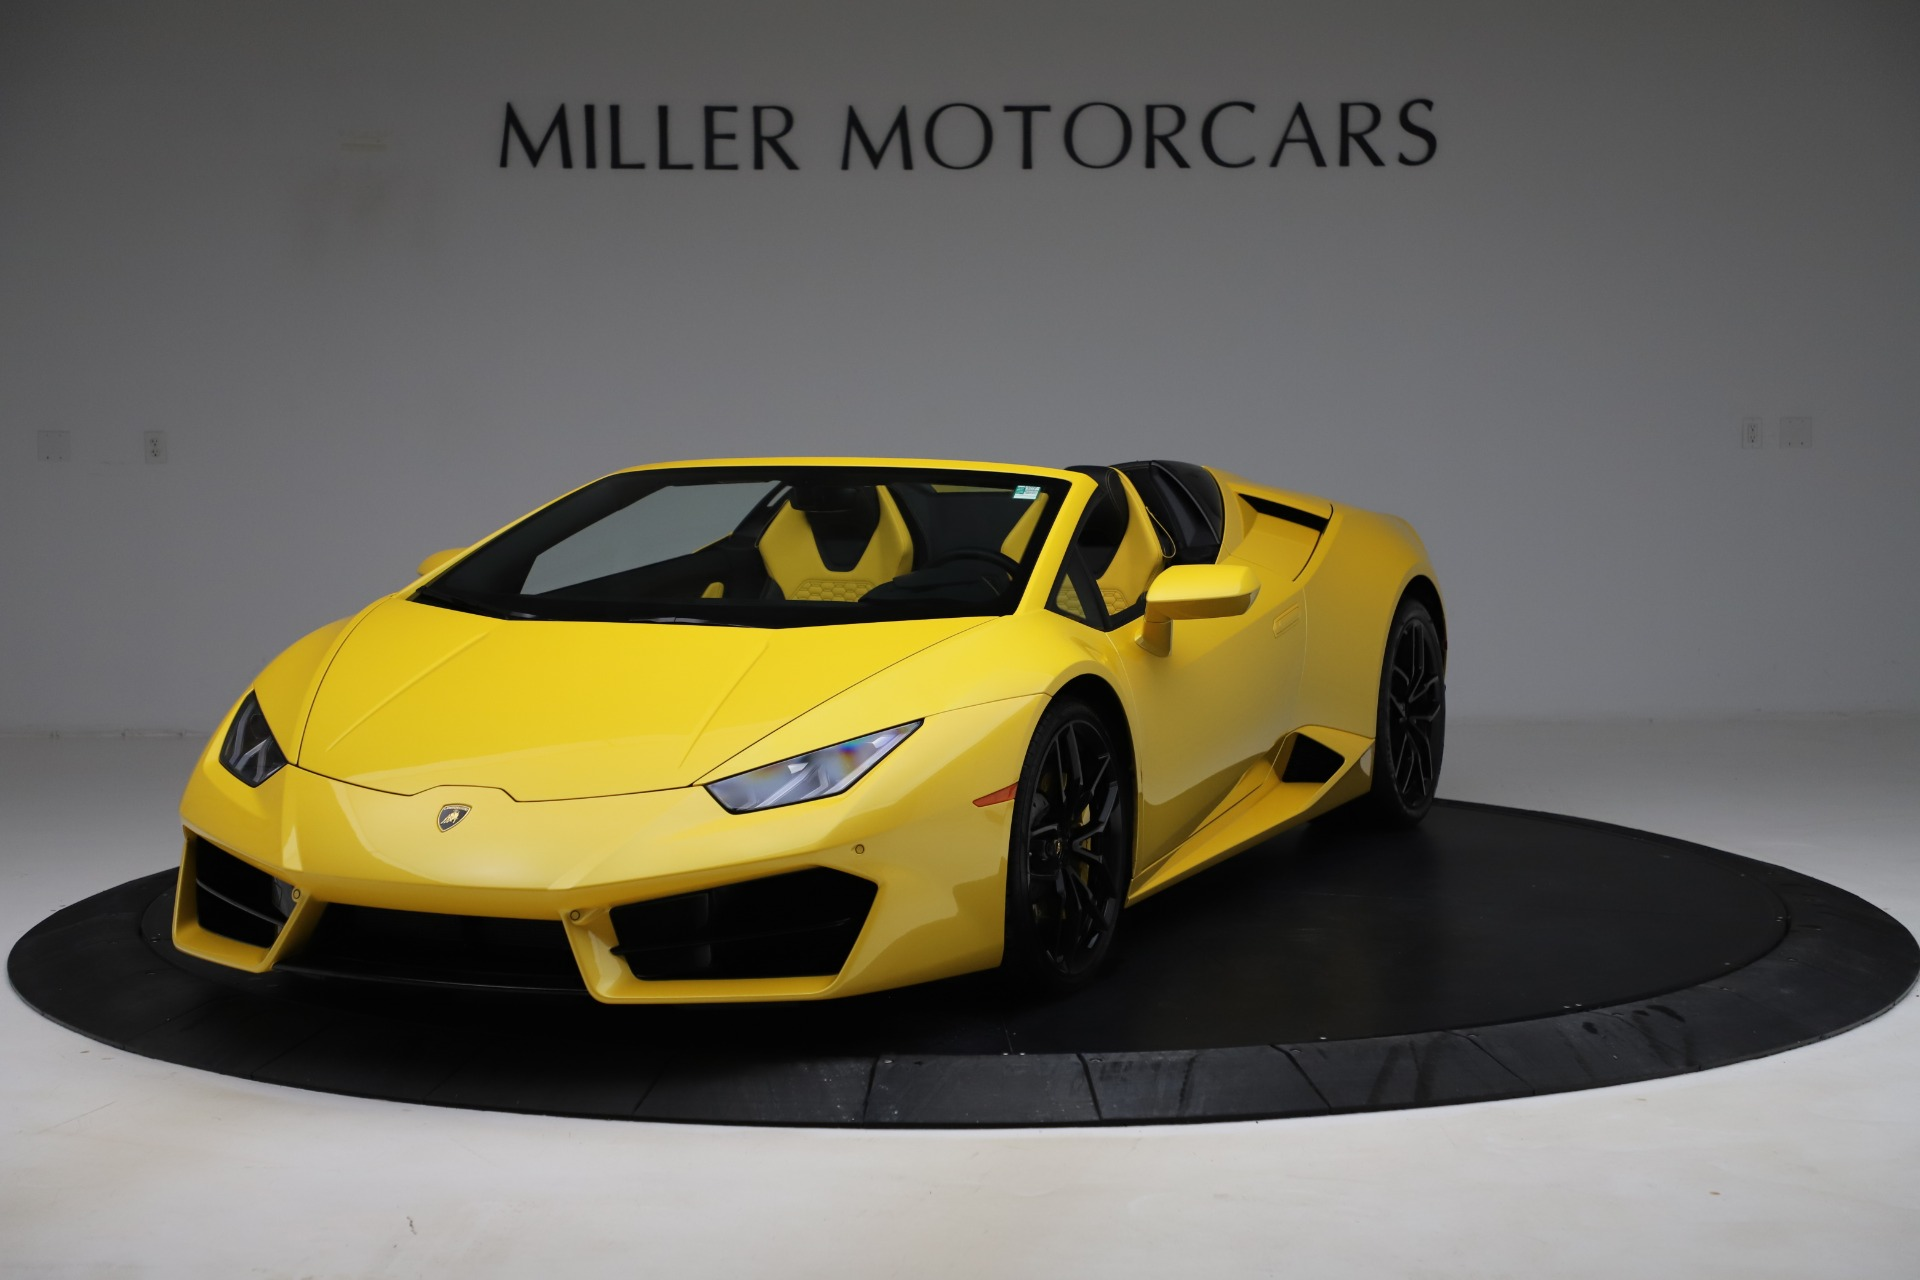 Used 2018 Lamborghini Huracan LP 580-2 Spyder for sale $203,900 at Bugatti of Greenwich in Greenwich CT 06830 1